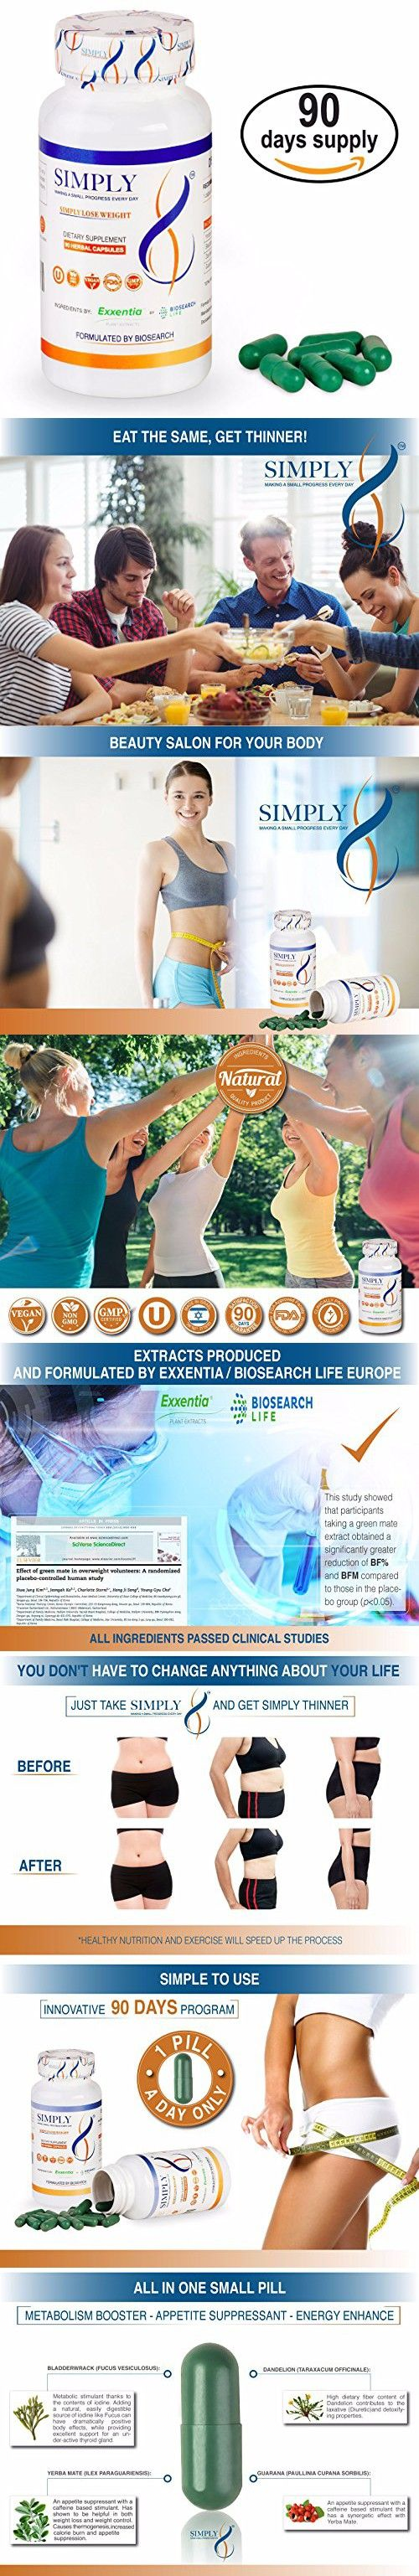 Simply8 - Natural Diet Pills, Clinically Proven Weight Loss Supplement & Appetite Suppressant, Premium Fat Burning Formula, Metabolism Booster & Energy Enhancer, (90-Day Supply), for Both Men & Women